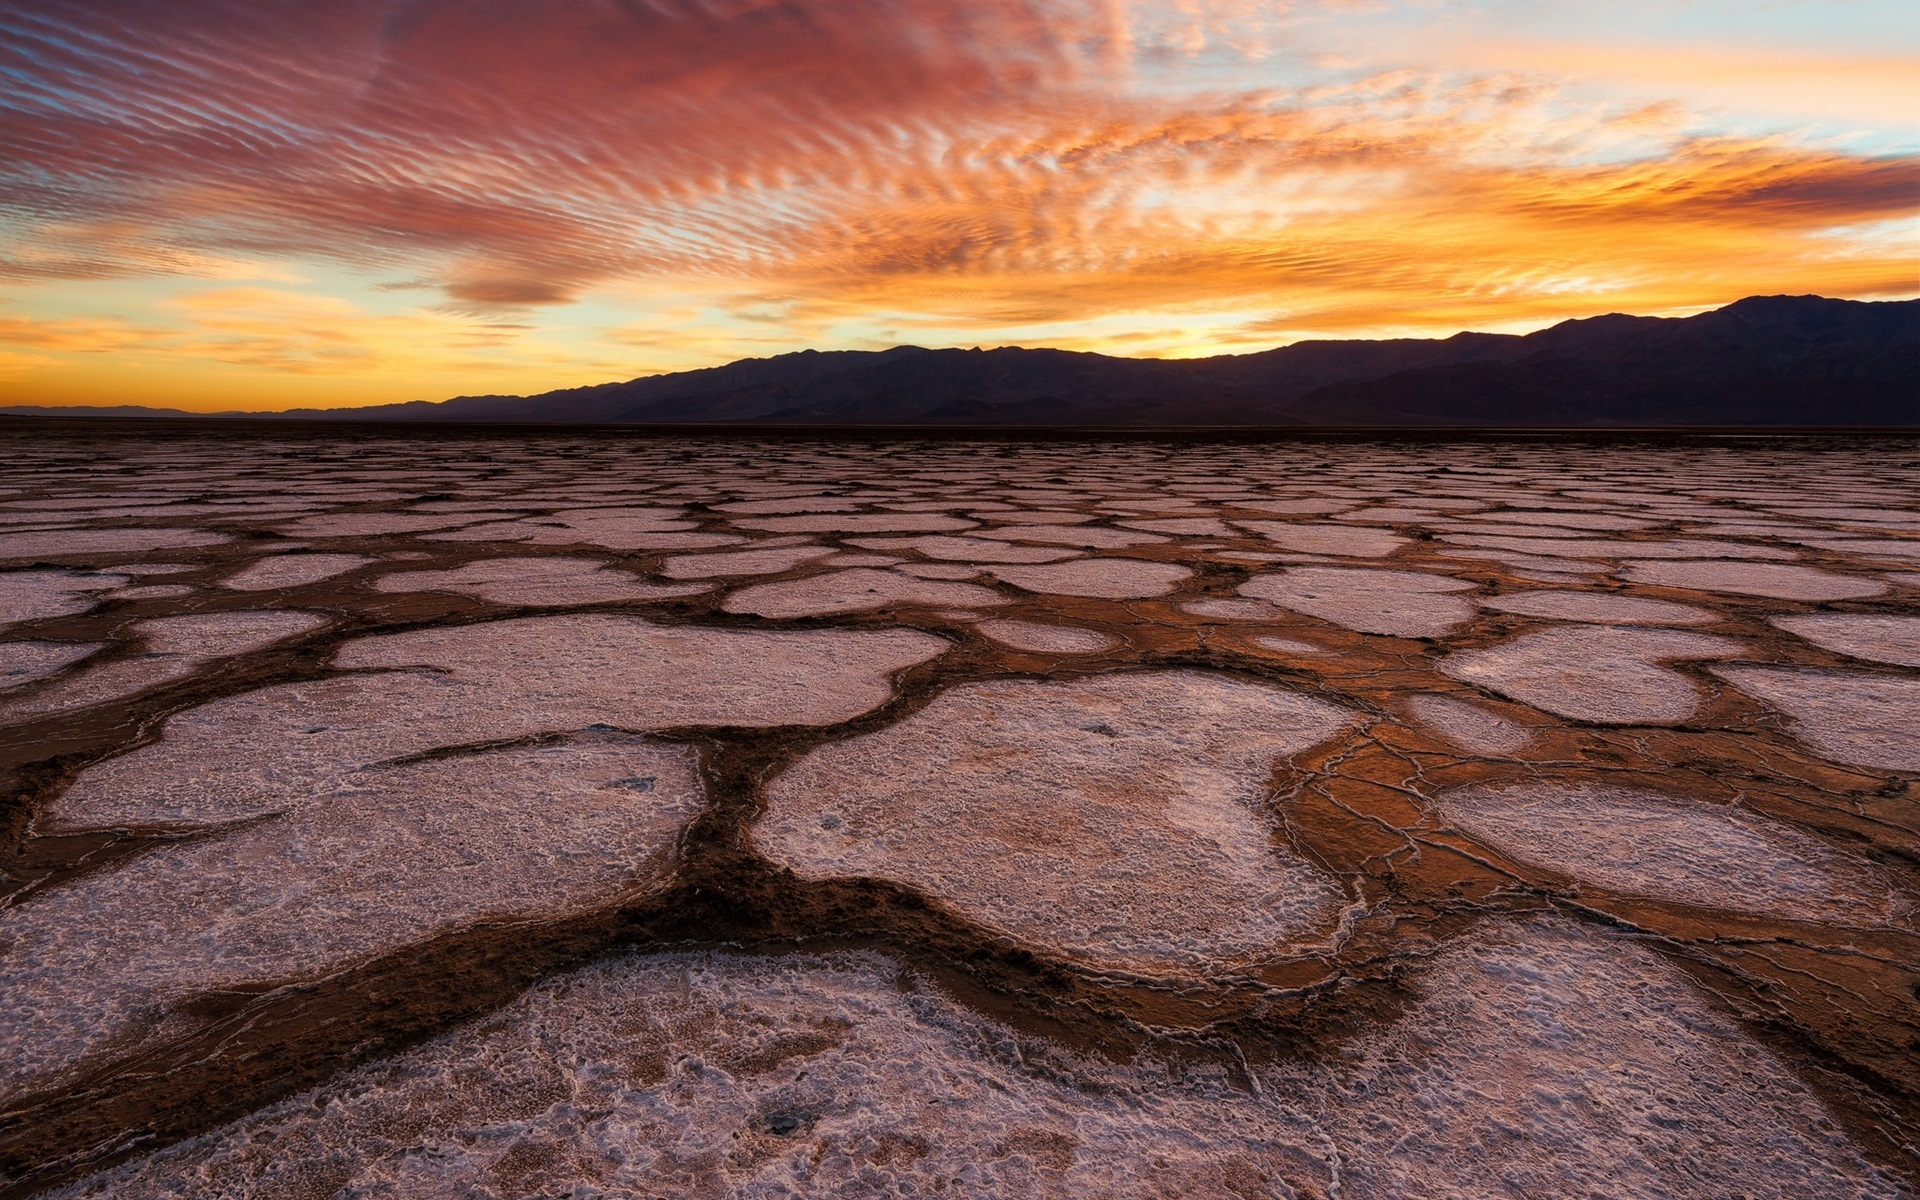 Wallpaper Cute Plain Death Valley Usa California Desert Sunset Red Sky